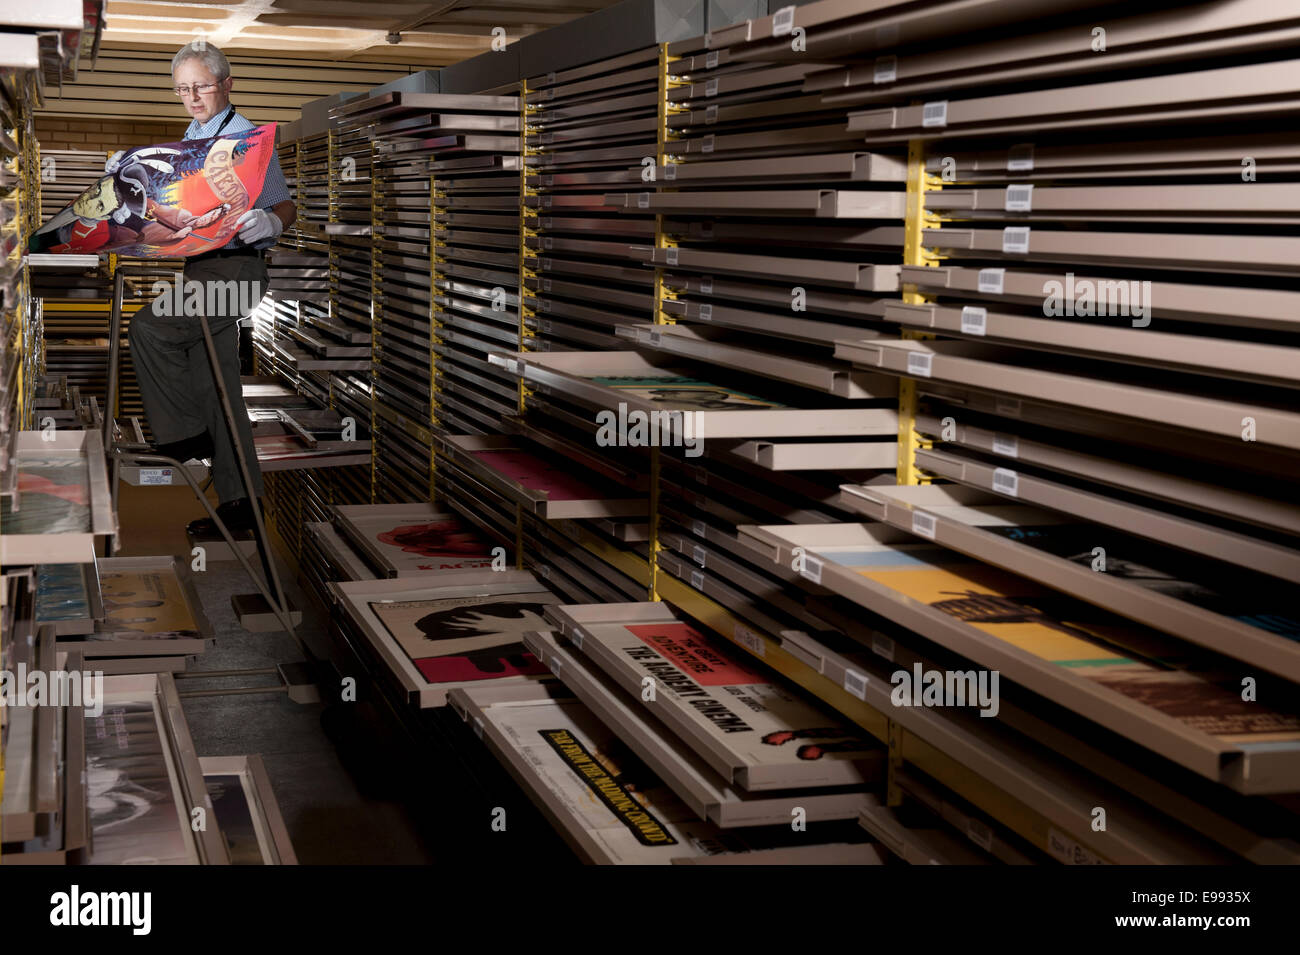 portrait of male member of staff at the BFI archive with all of the vintage film posters in storage draws to preserve - Stock Image